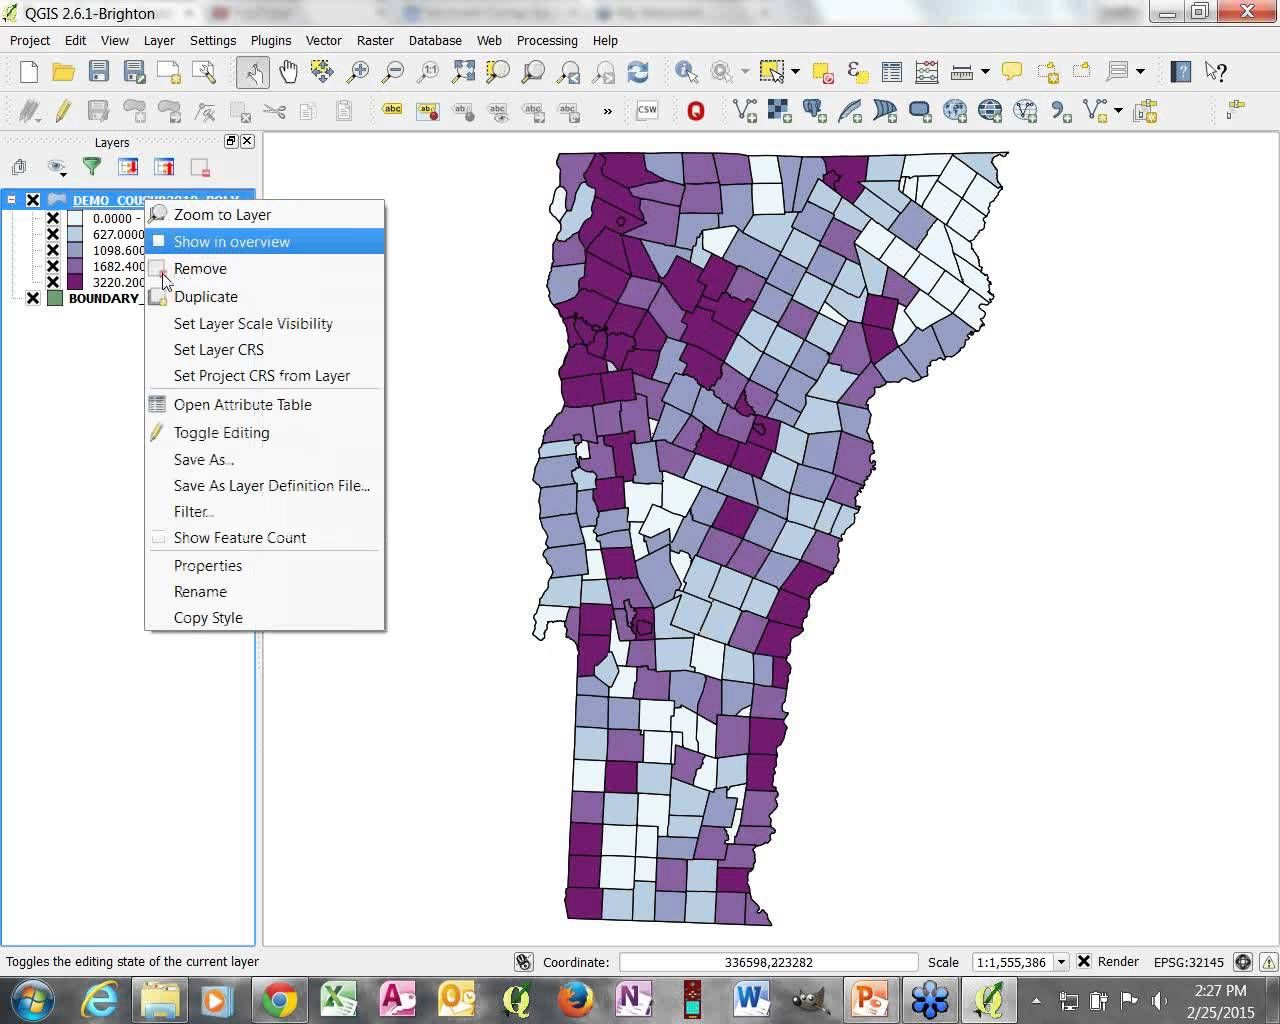 QGIS is a free and open source GIS software program that can